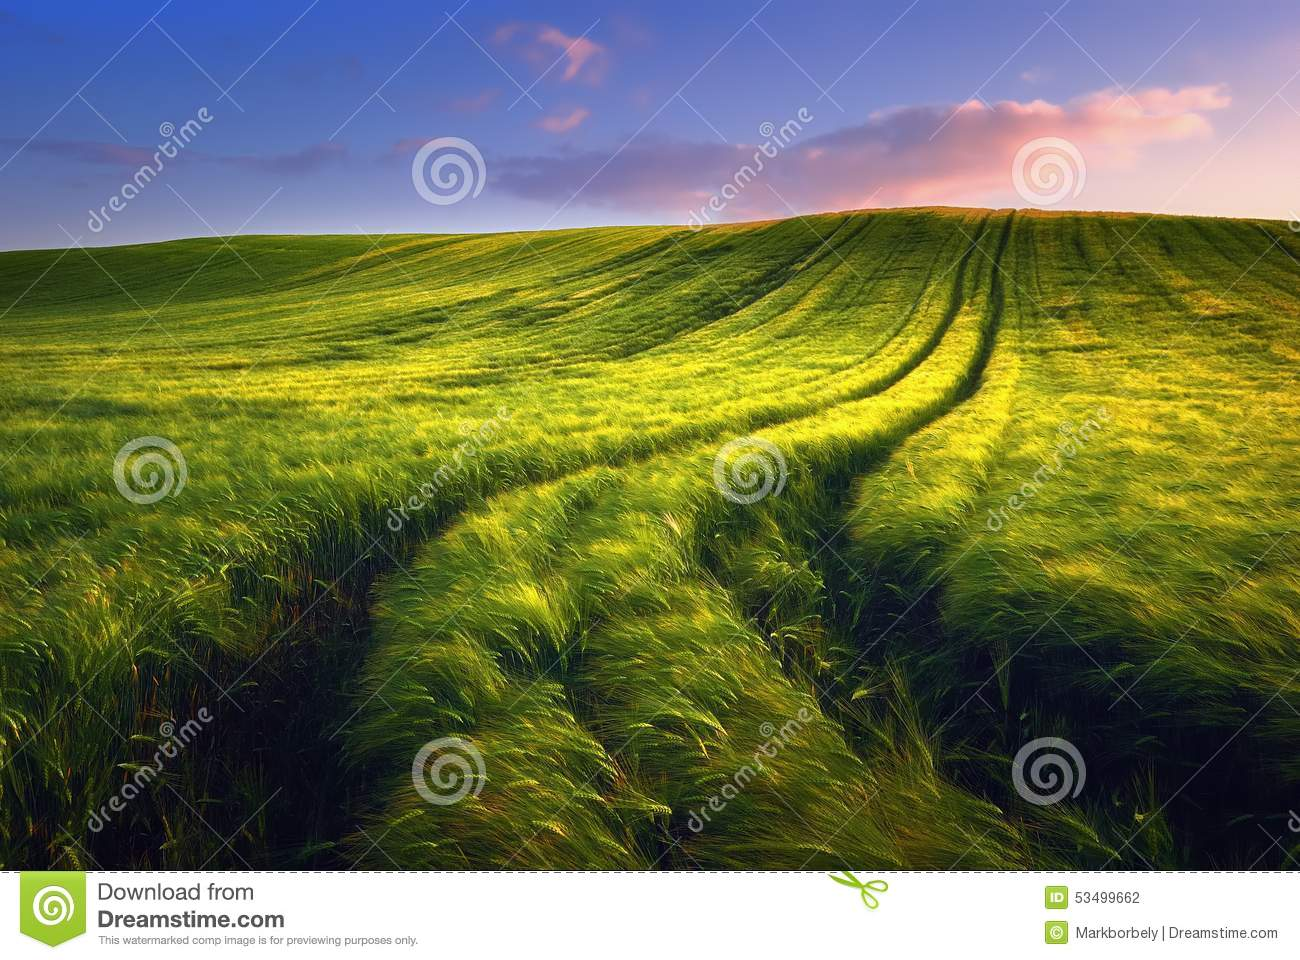 Golden wheat field with path in the sunset time